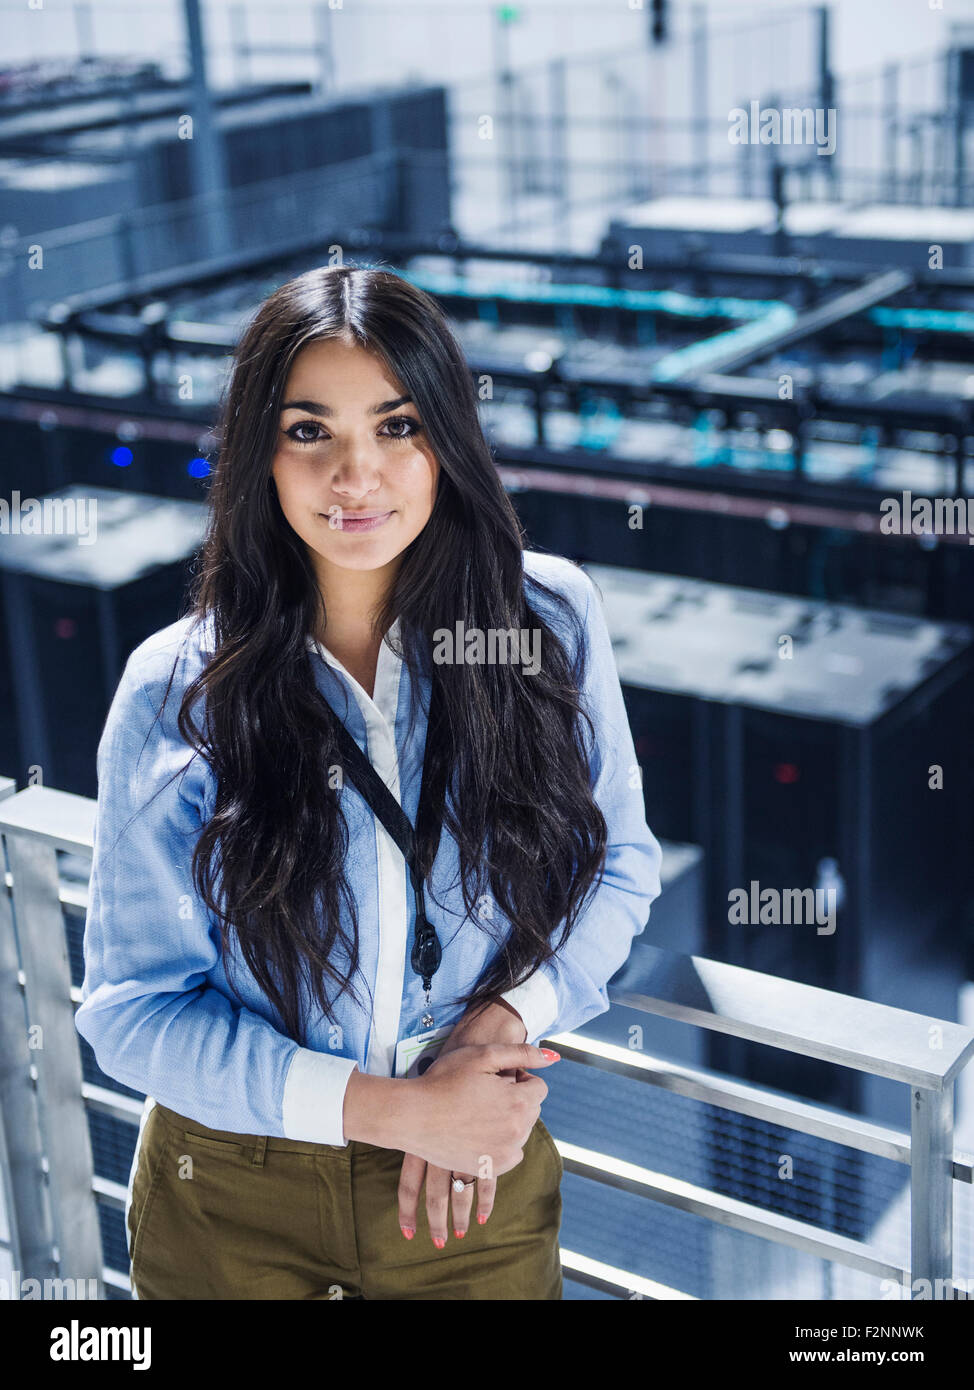 Mixed Race Businesswoman Smiling On Balcony Over Server Room Stock Photo Alamy